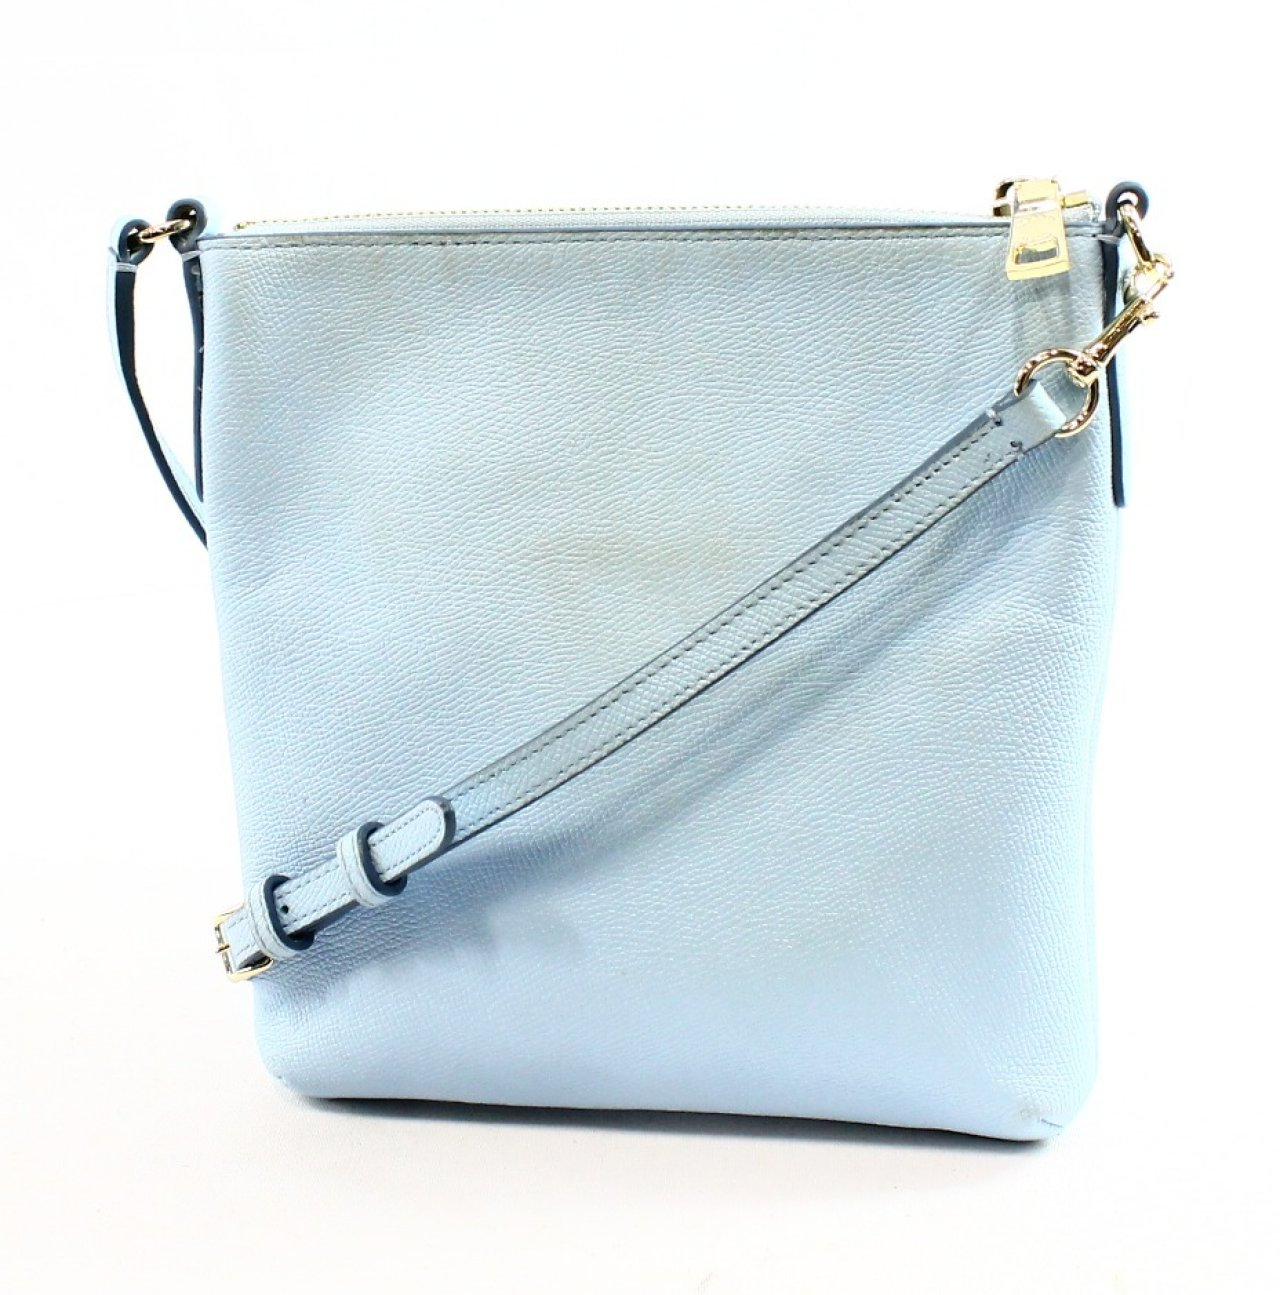 Coach Pale Blue Embossed Pebble Leather Swingpack Crossbody Bag Purse ...